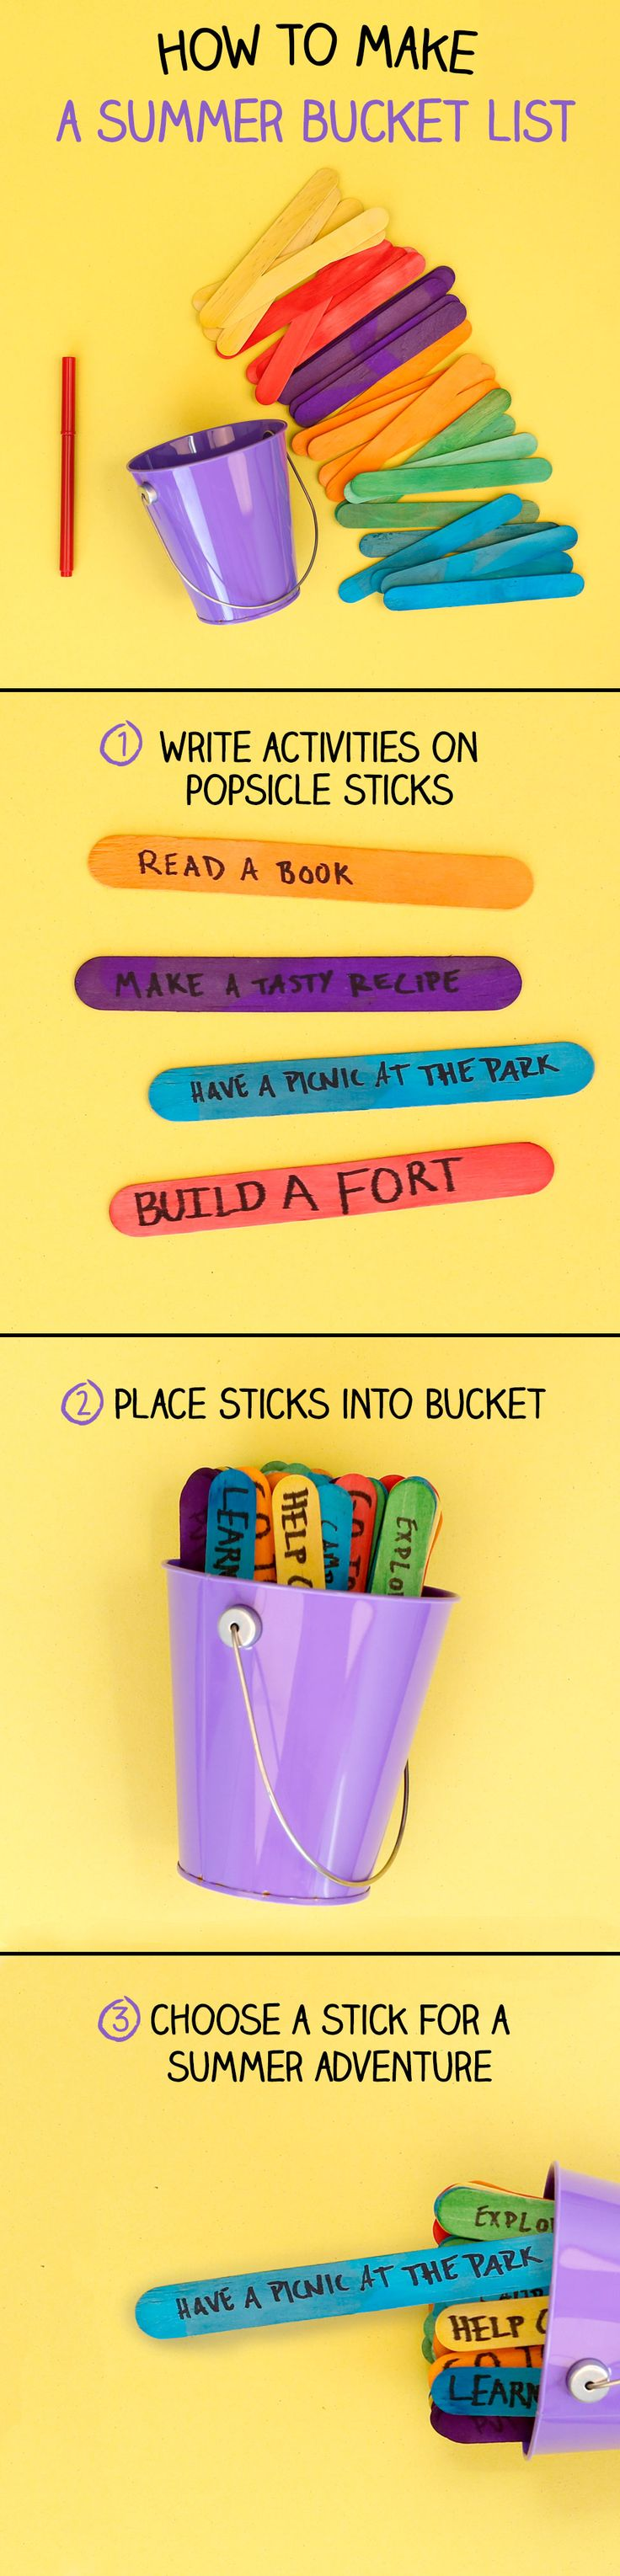 Get inspired with this DIY summer bucket list! Personalize the activities for your child and enjoy quality time together.